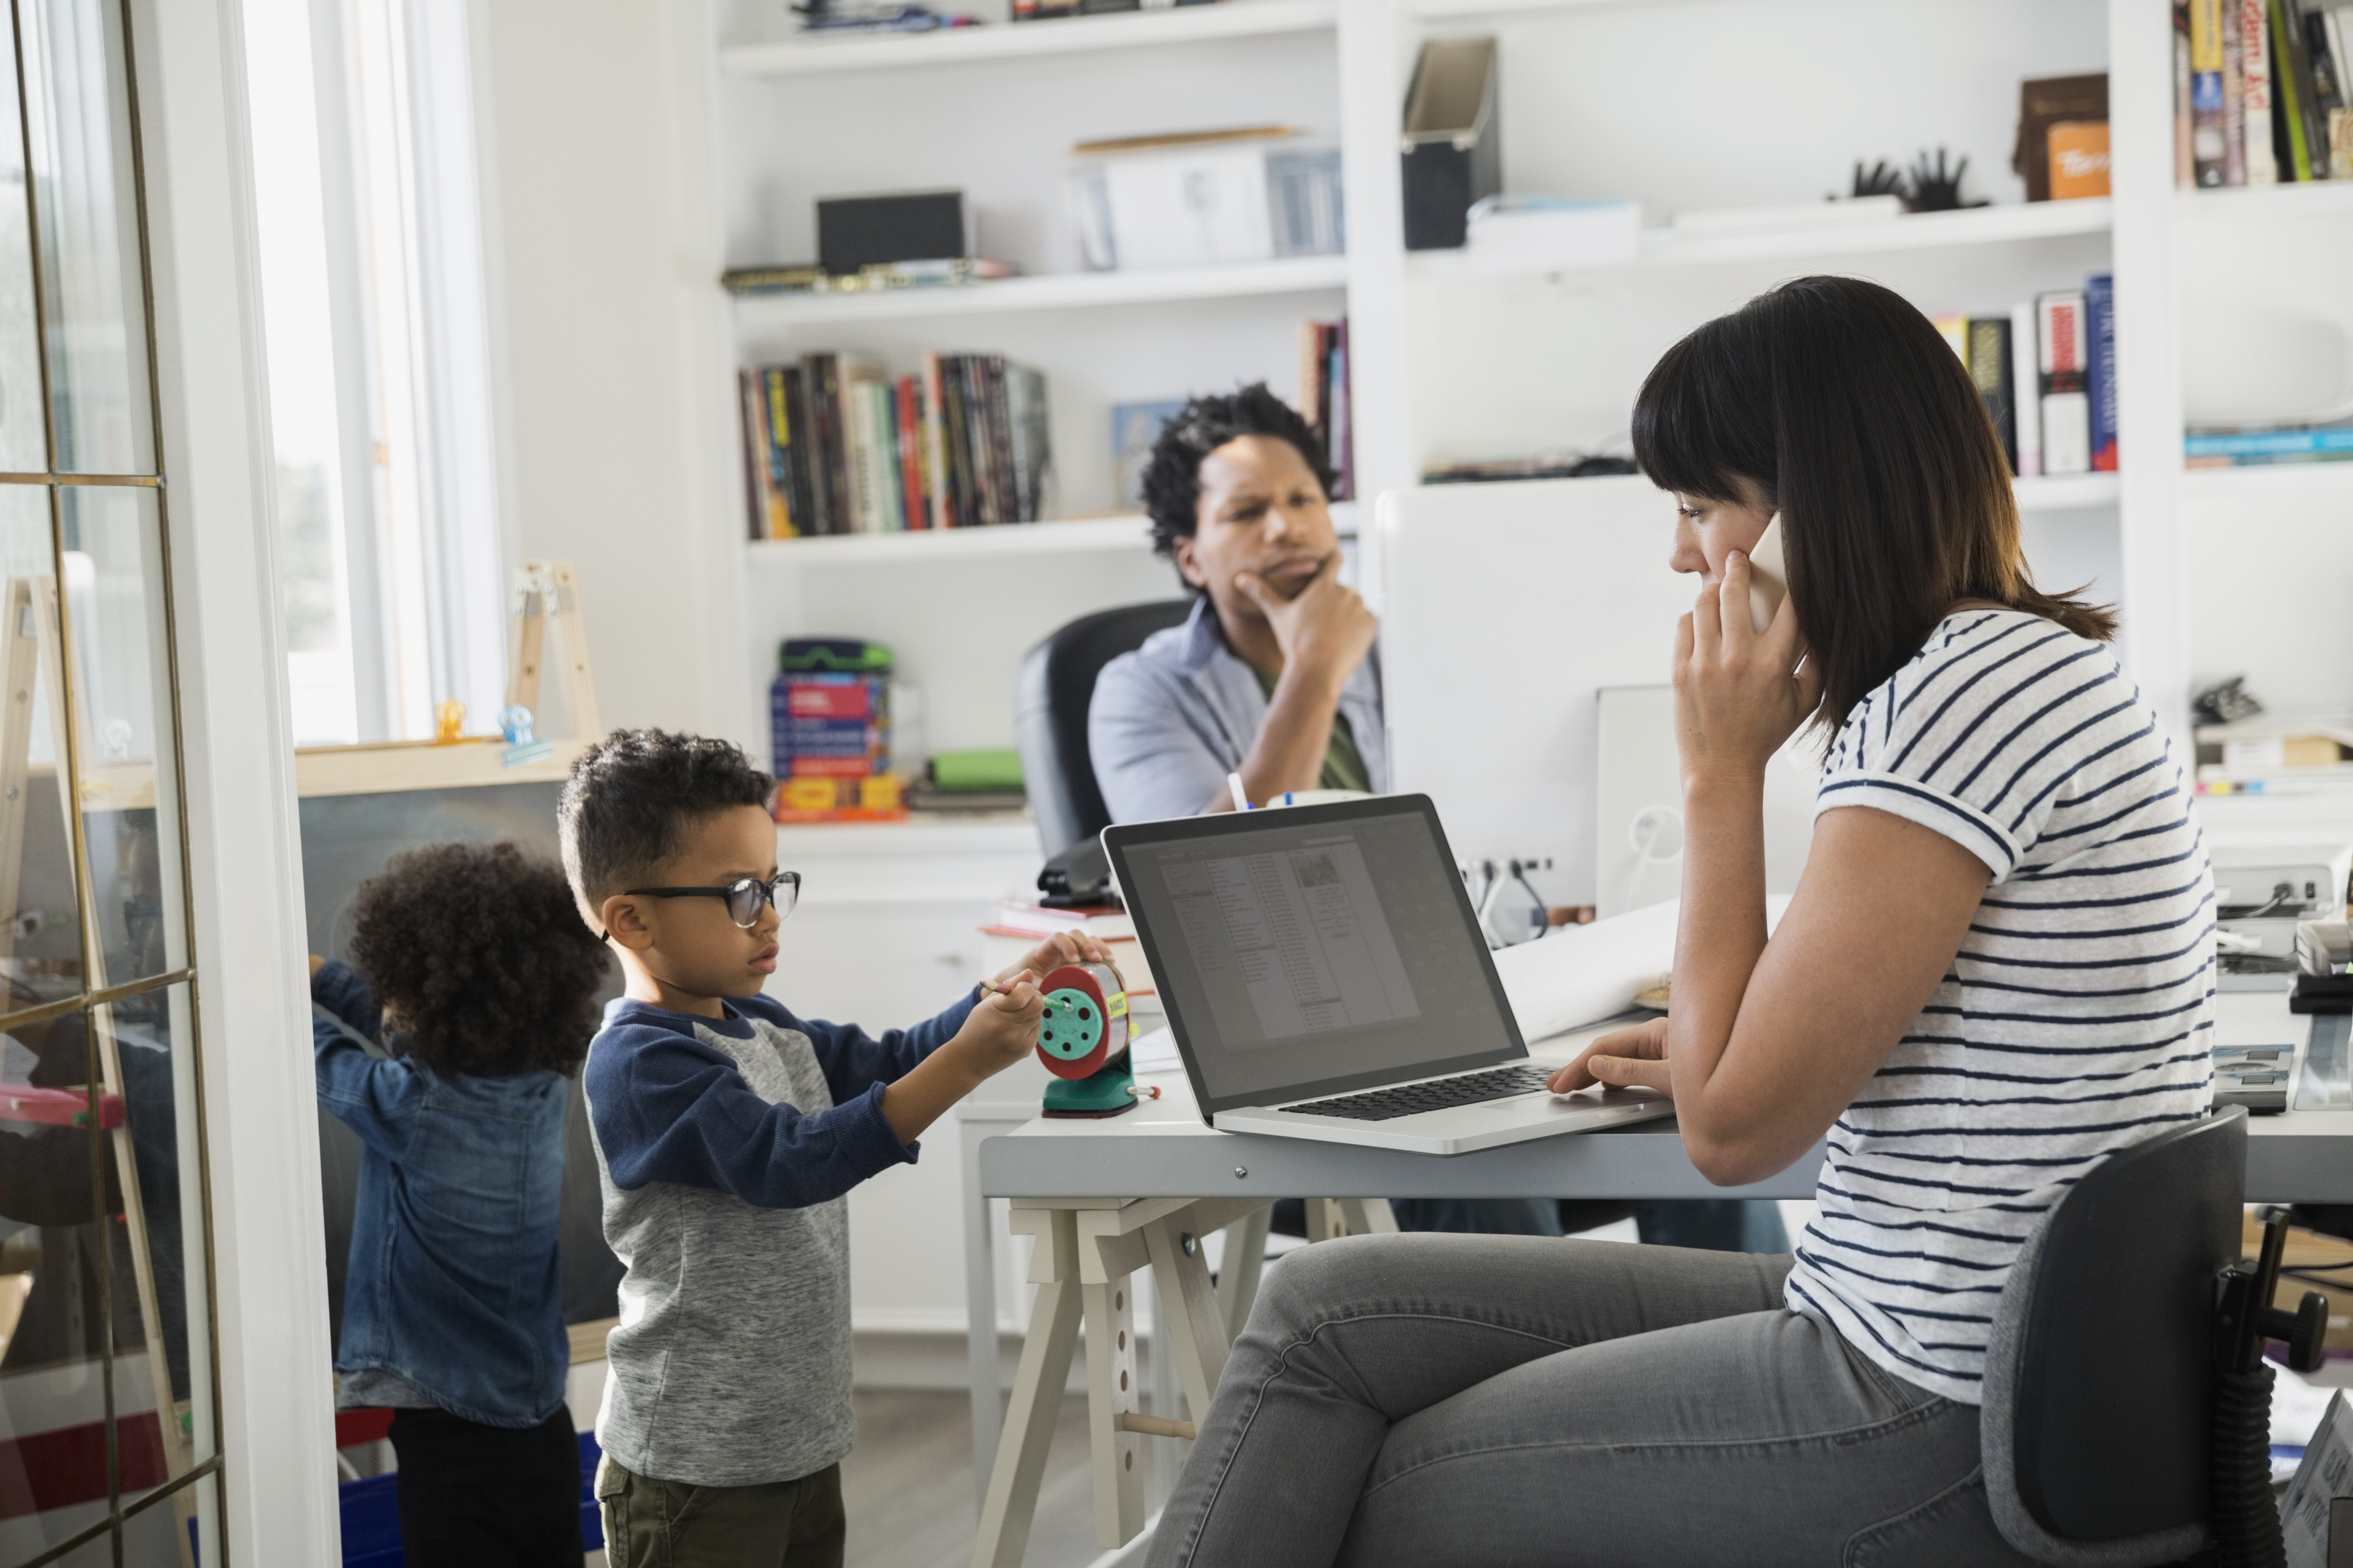 5 Hacks For Working Parents To Make Your Week More Productive